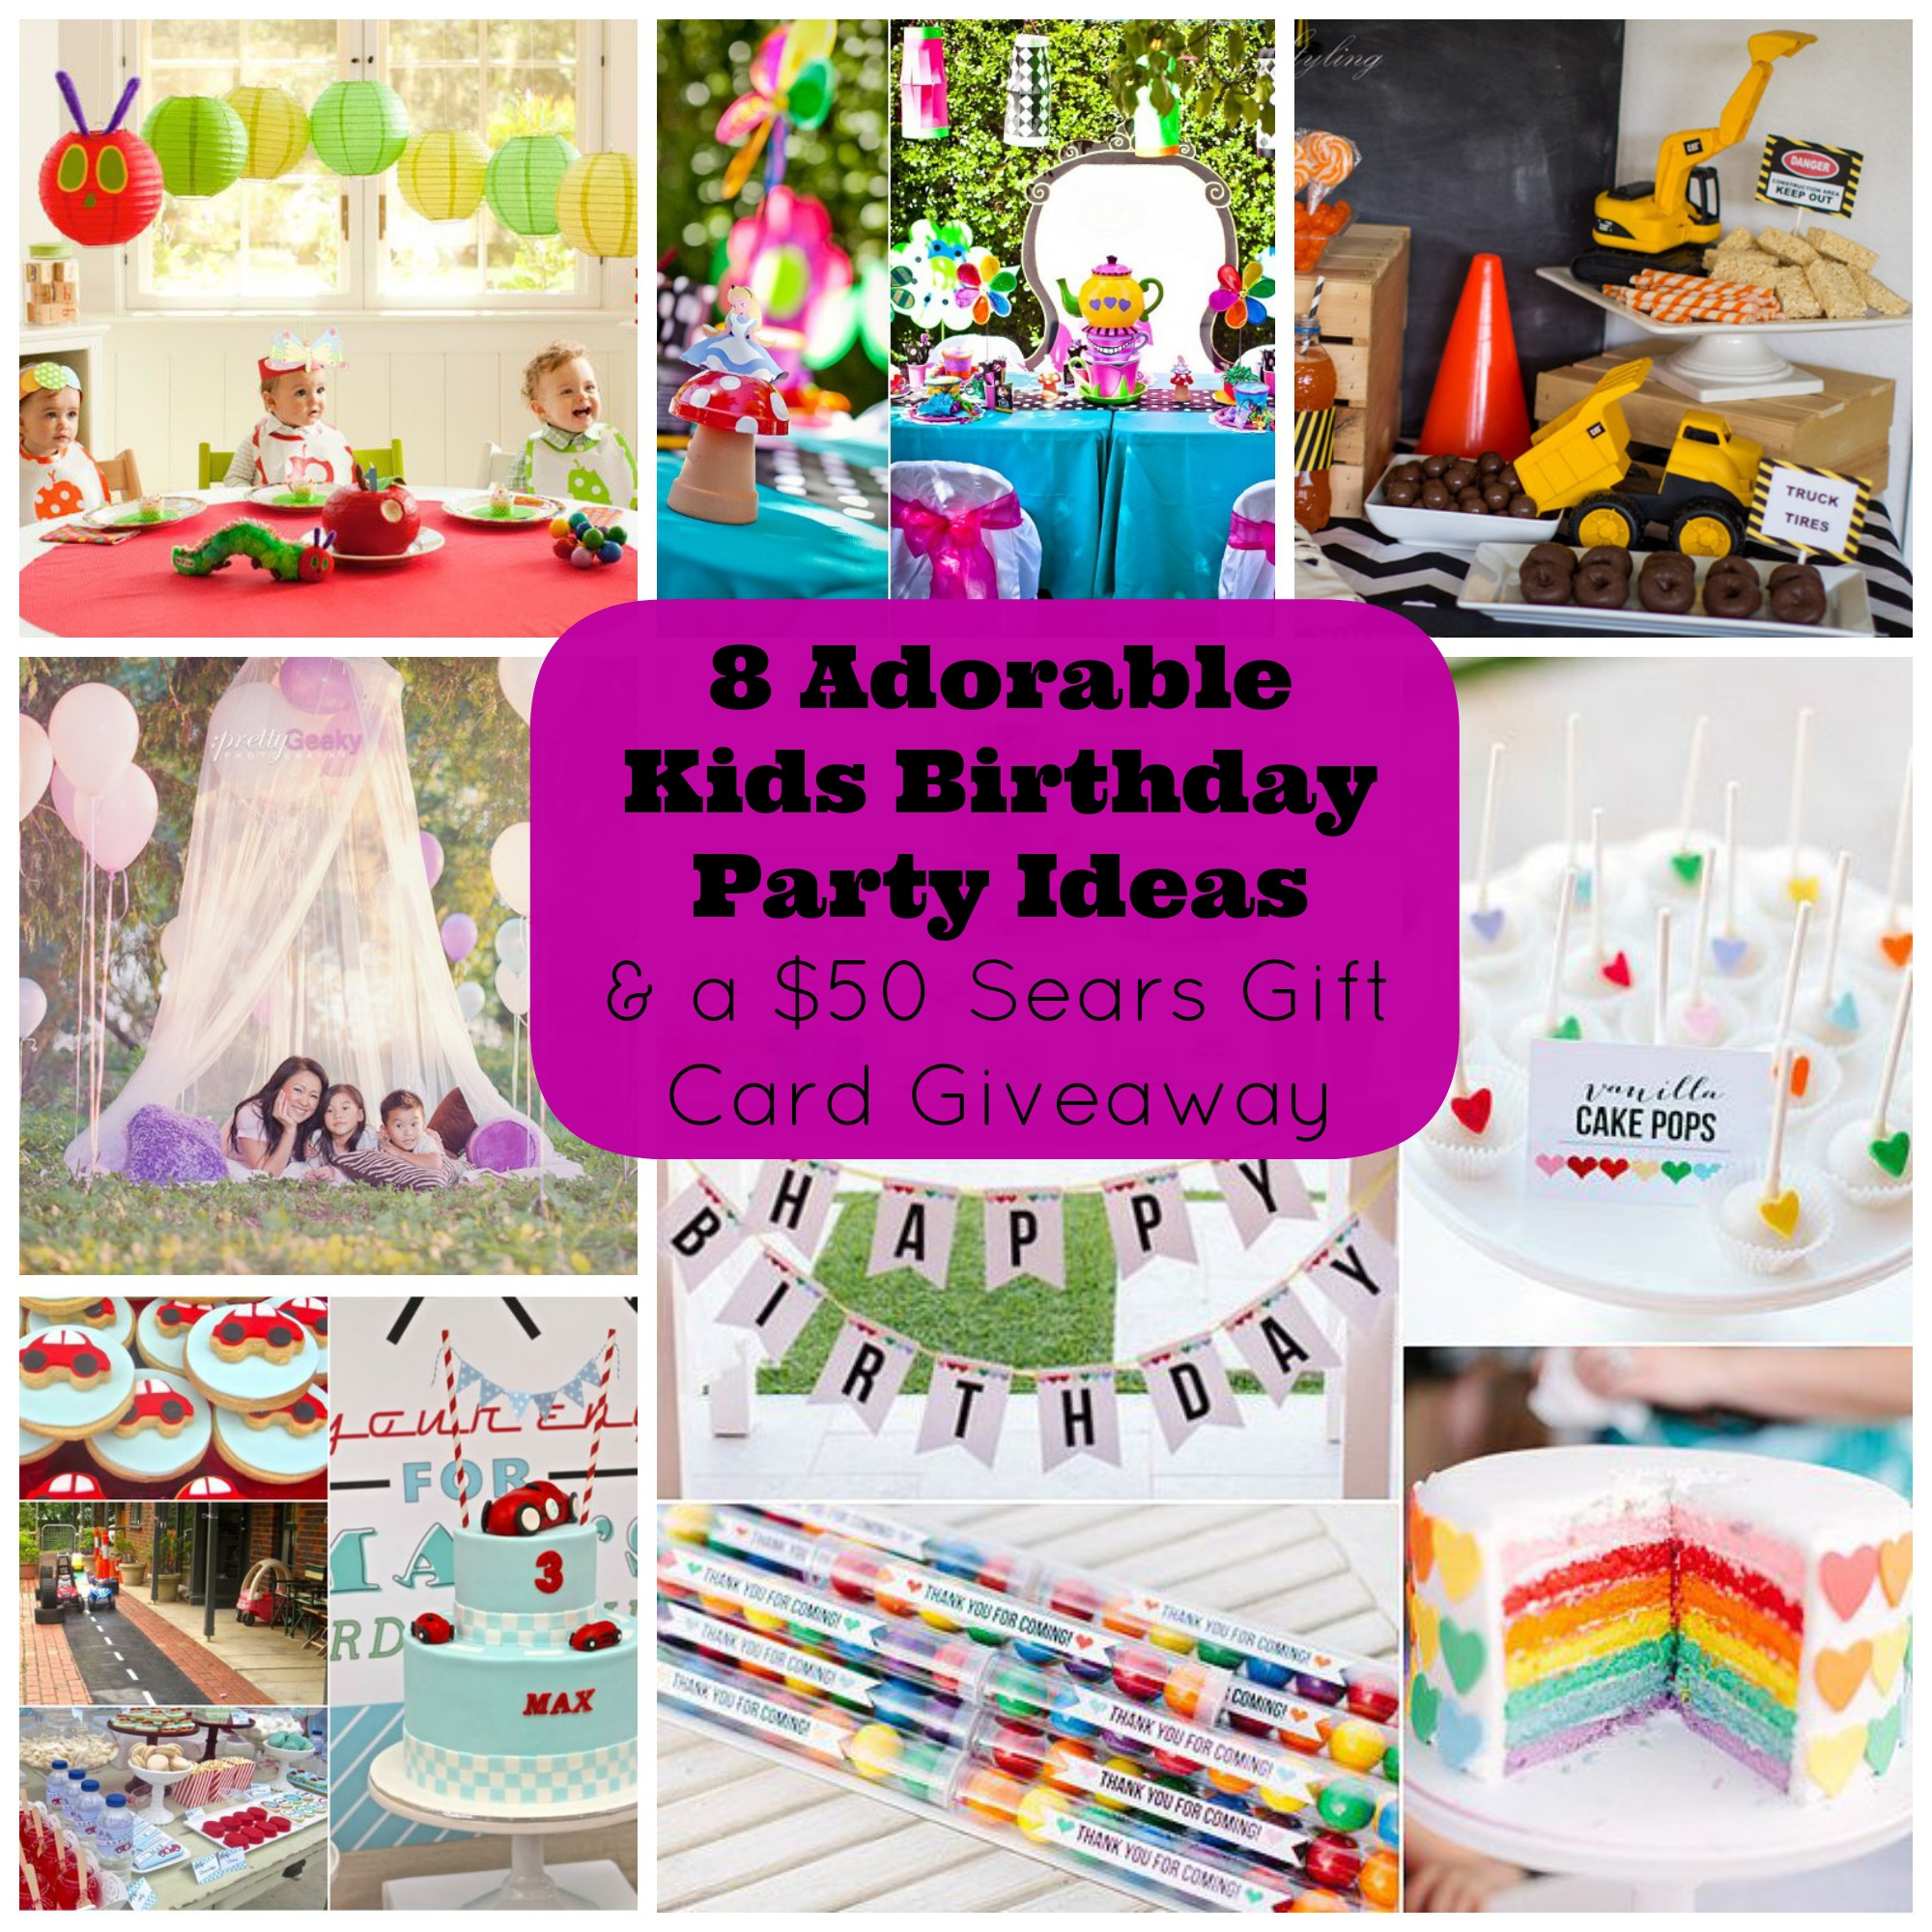 8 Adorable Kids Birthday Party Ideas and a Giveaway for a $50